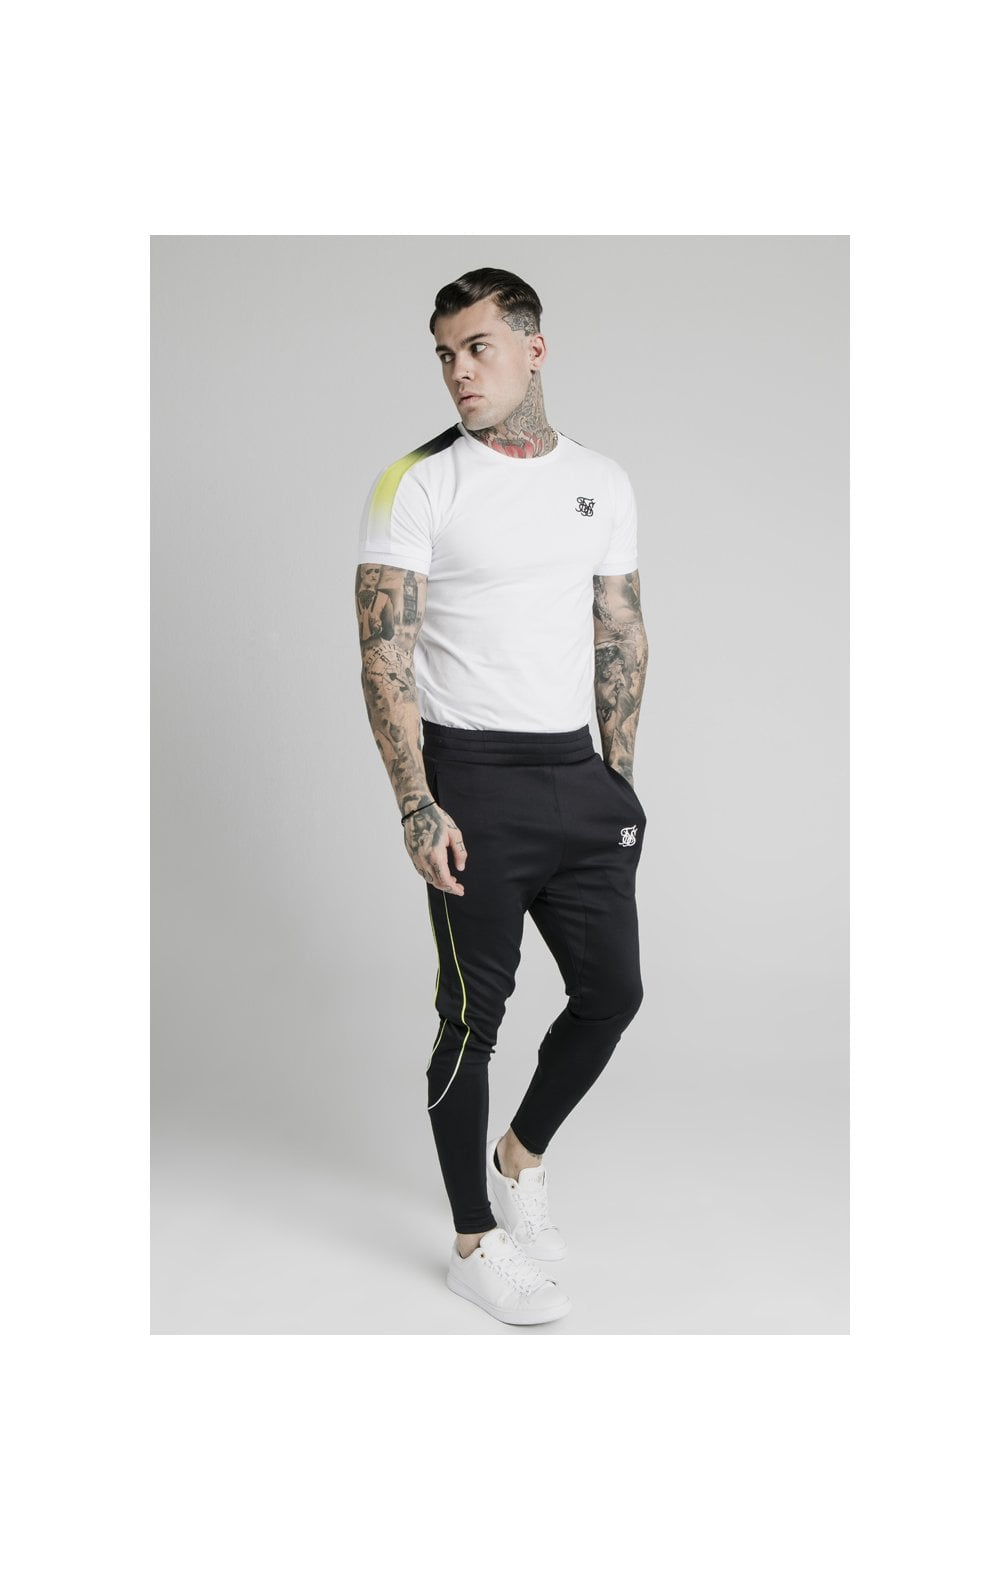 SikSilk S/S Fade Panel Tech Tee - White (2)